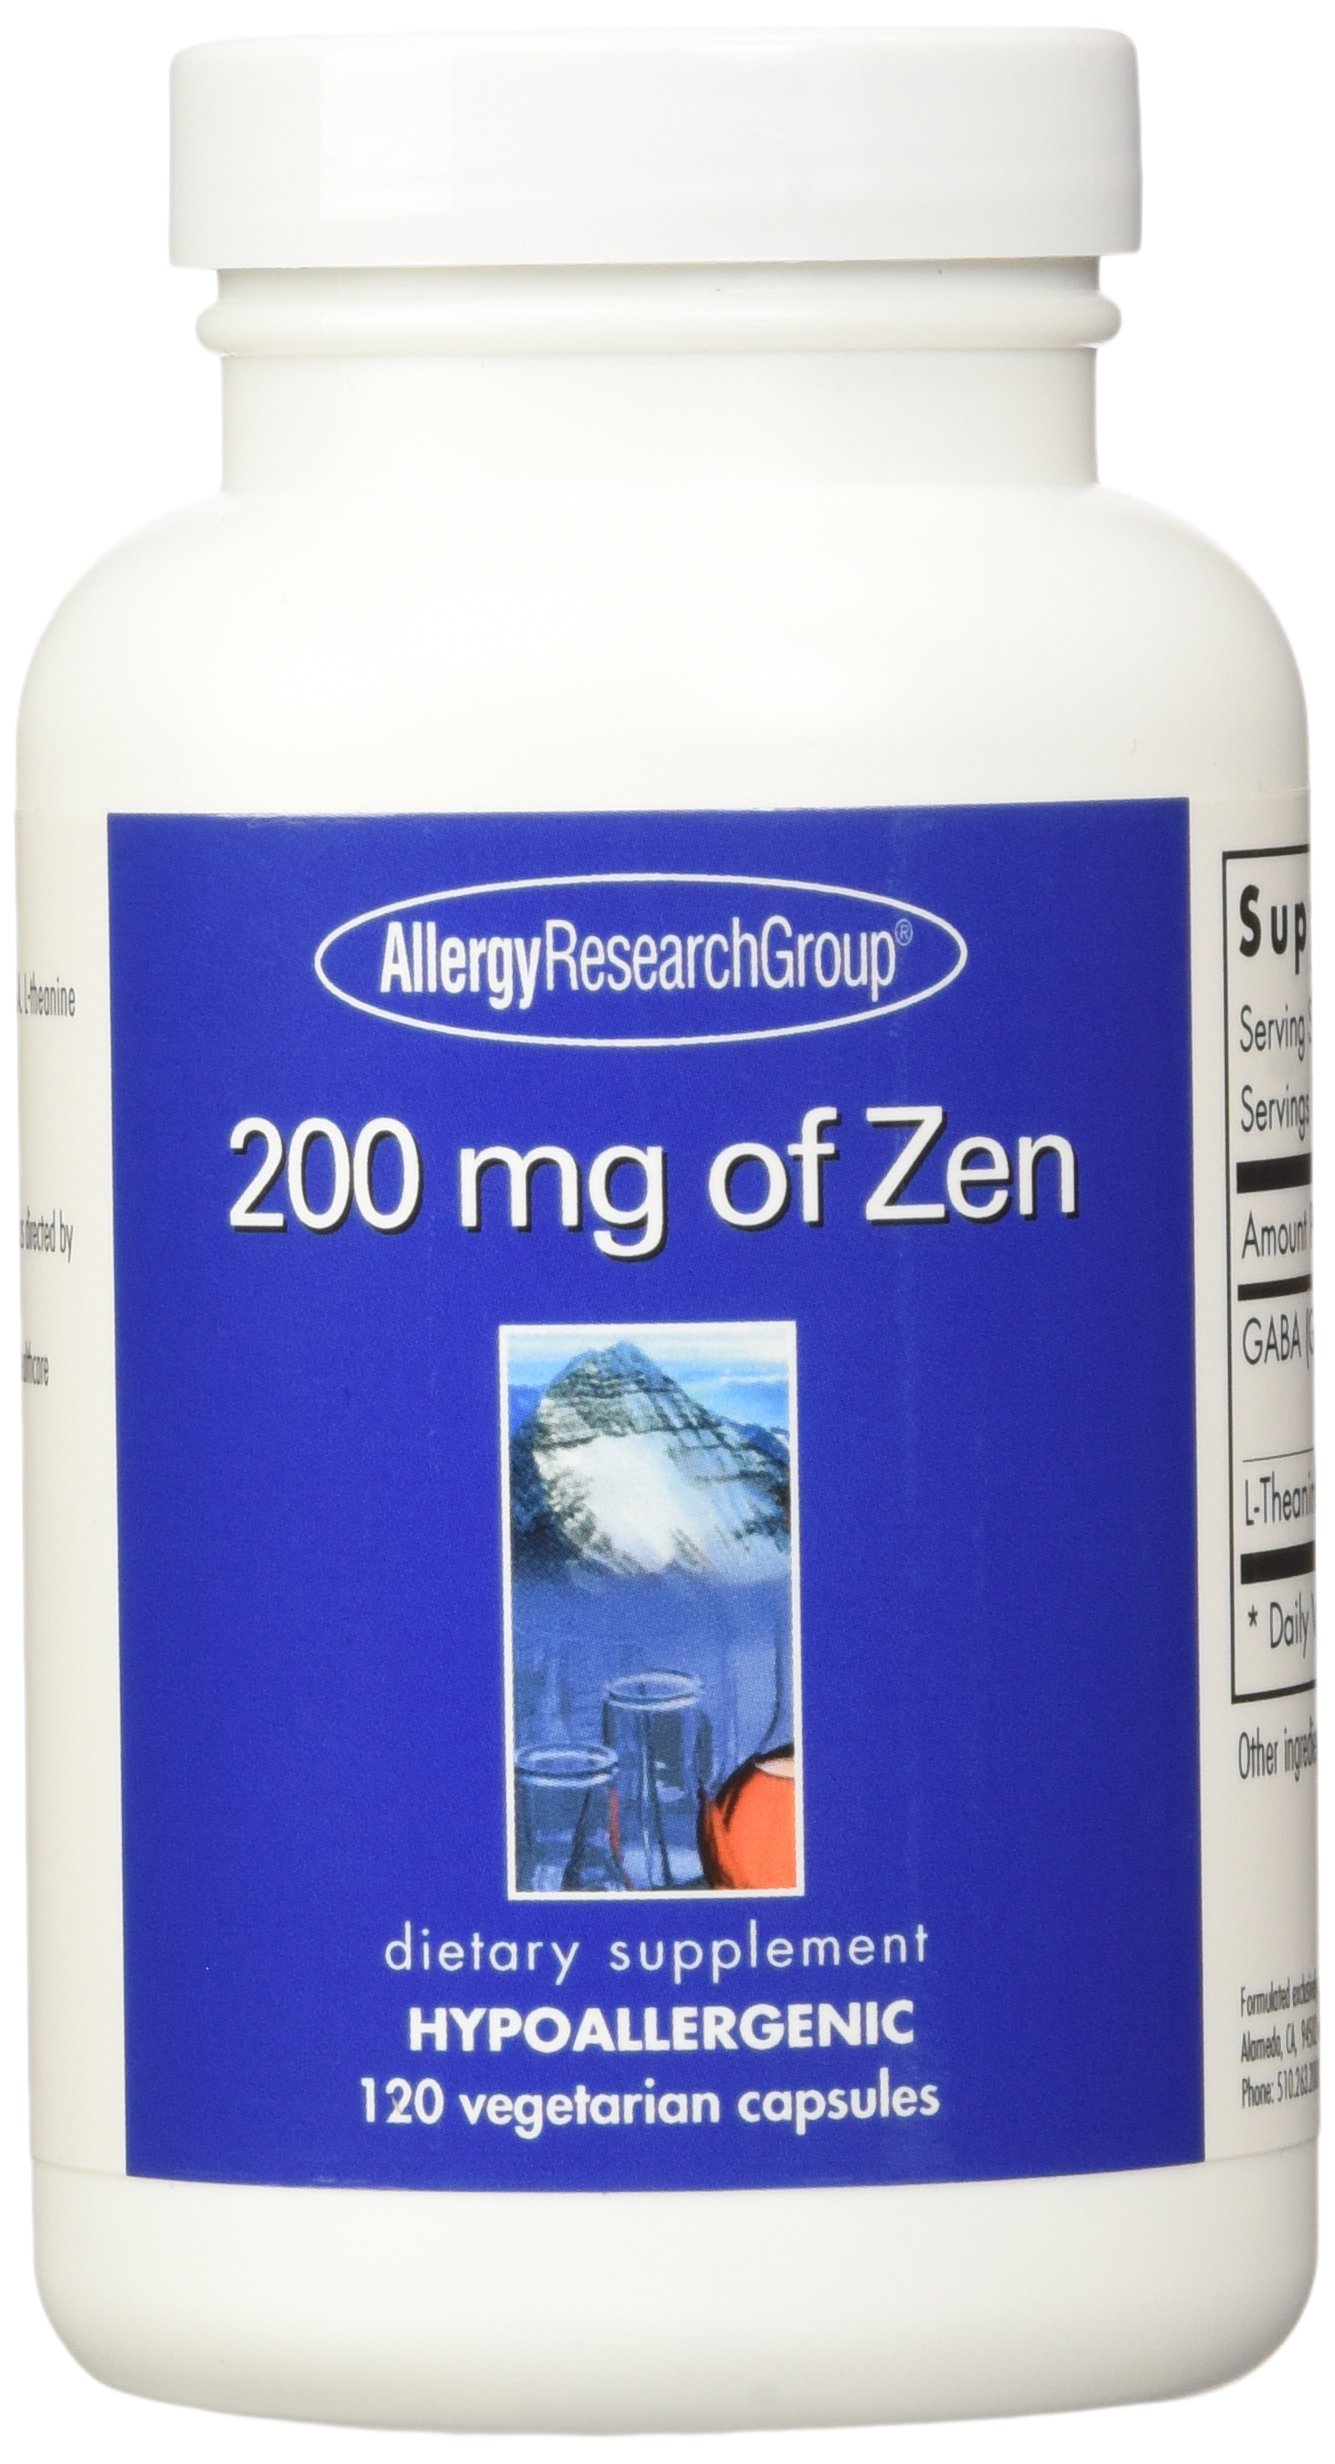 Allergy Research Group 200 Mg of Zen -- 120 Vegetarian Capsules